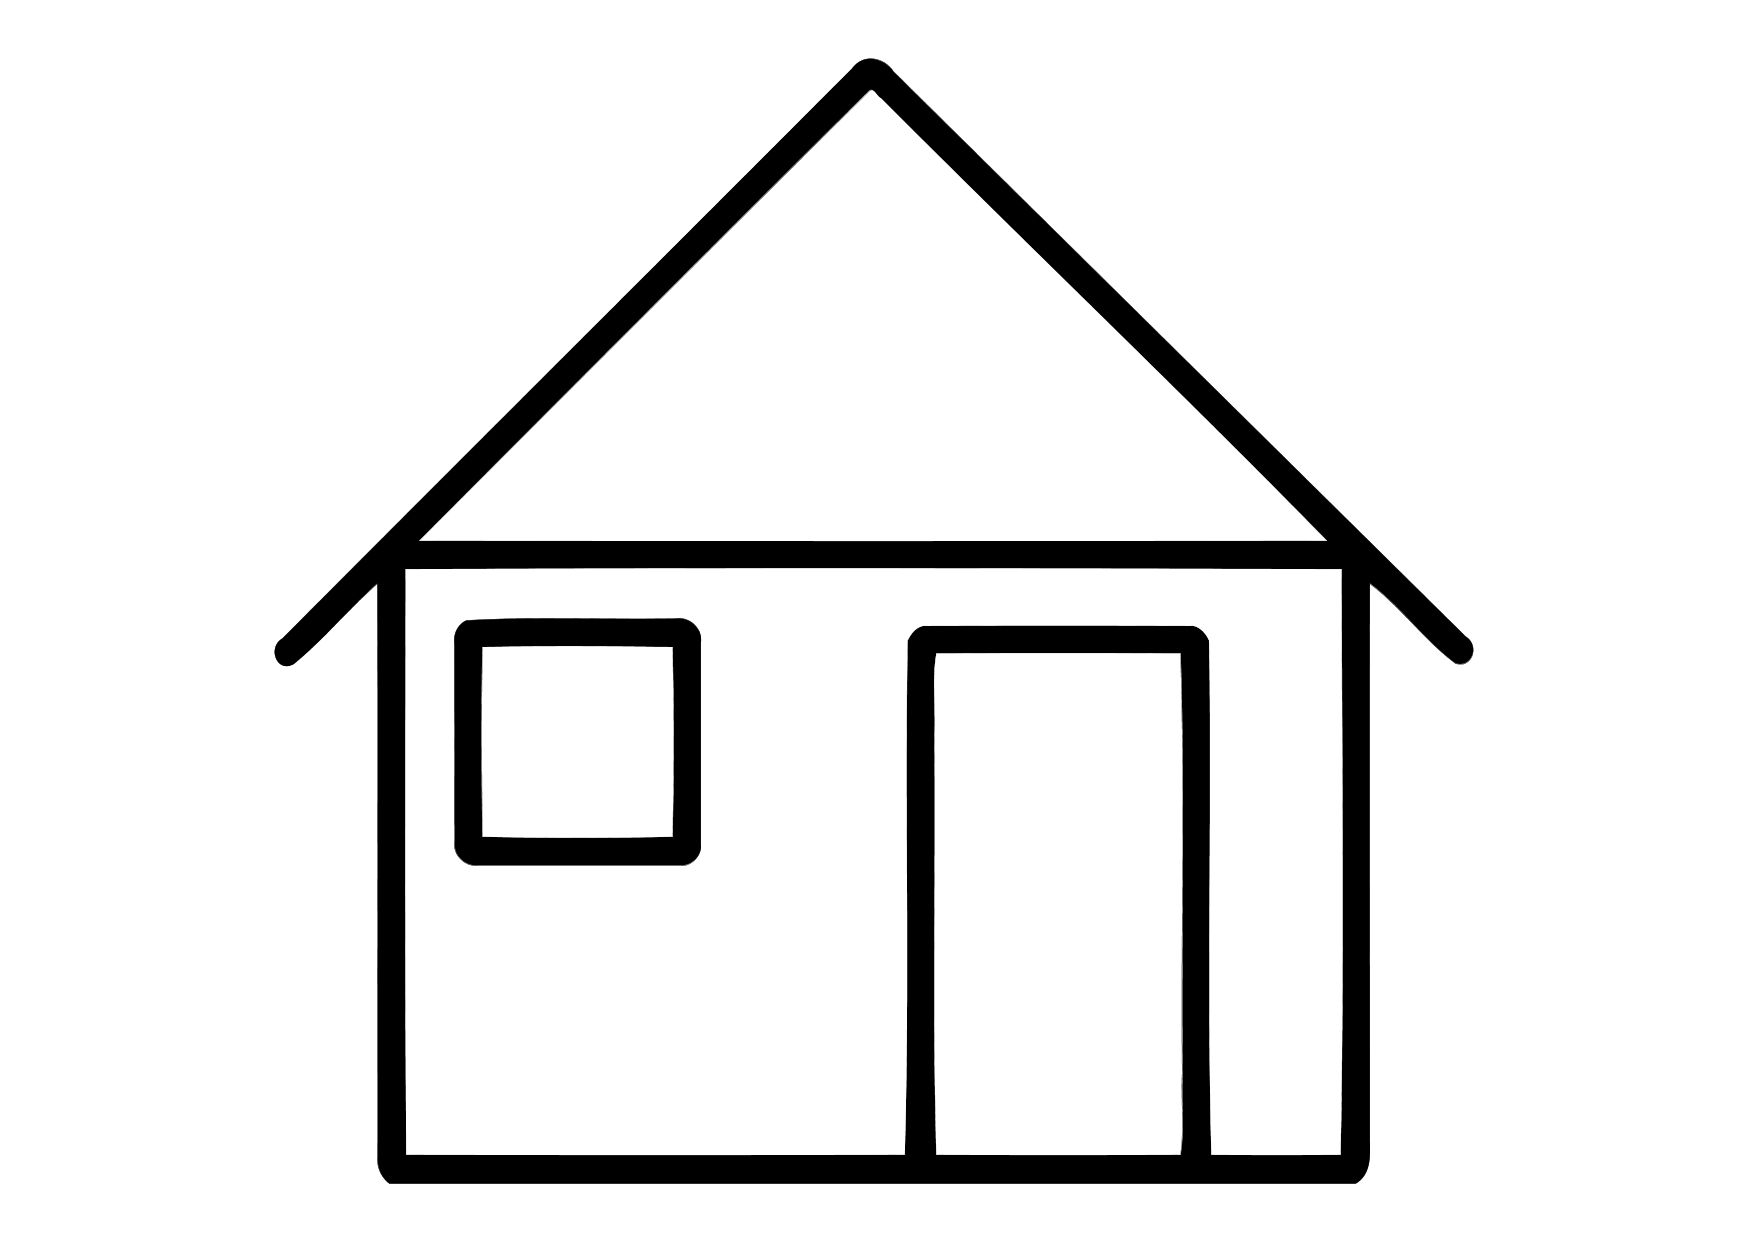 house coloring pages printable free printable house coloring pages for kids printable pages coloring house